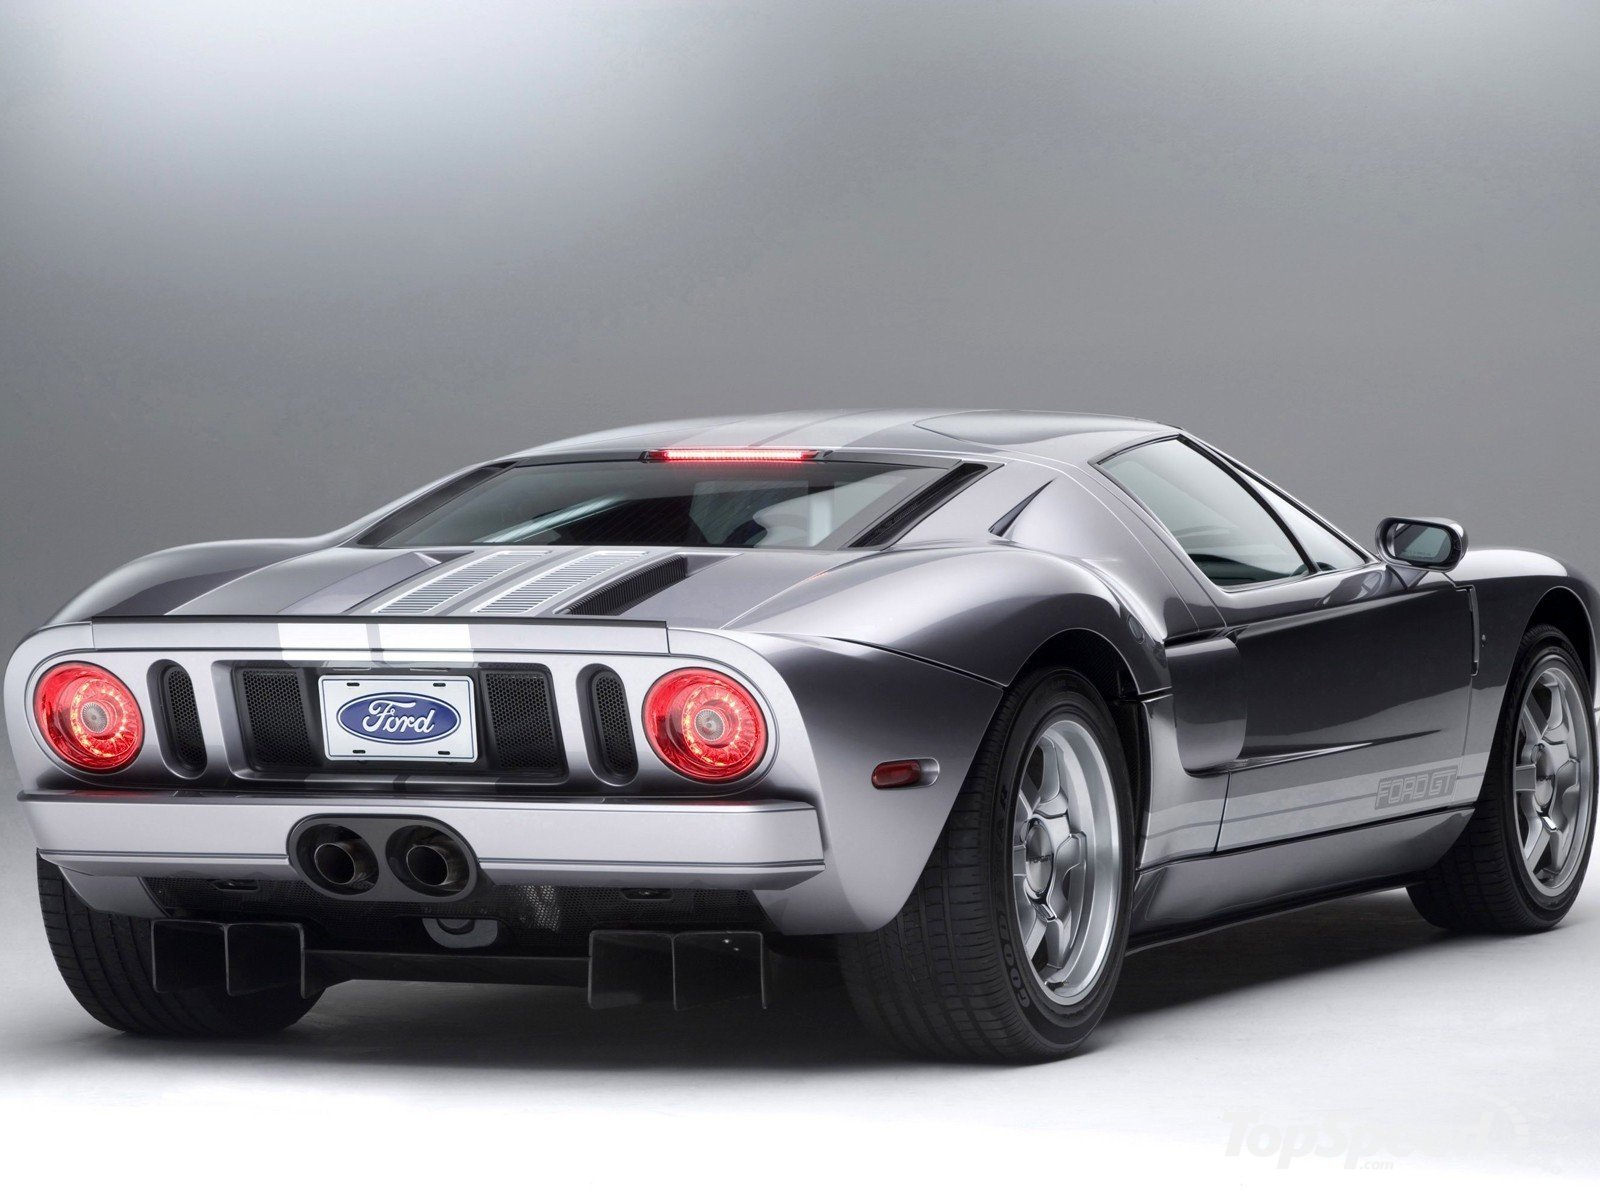 Ford Gt Tuning Car Hd Wallpapers